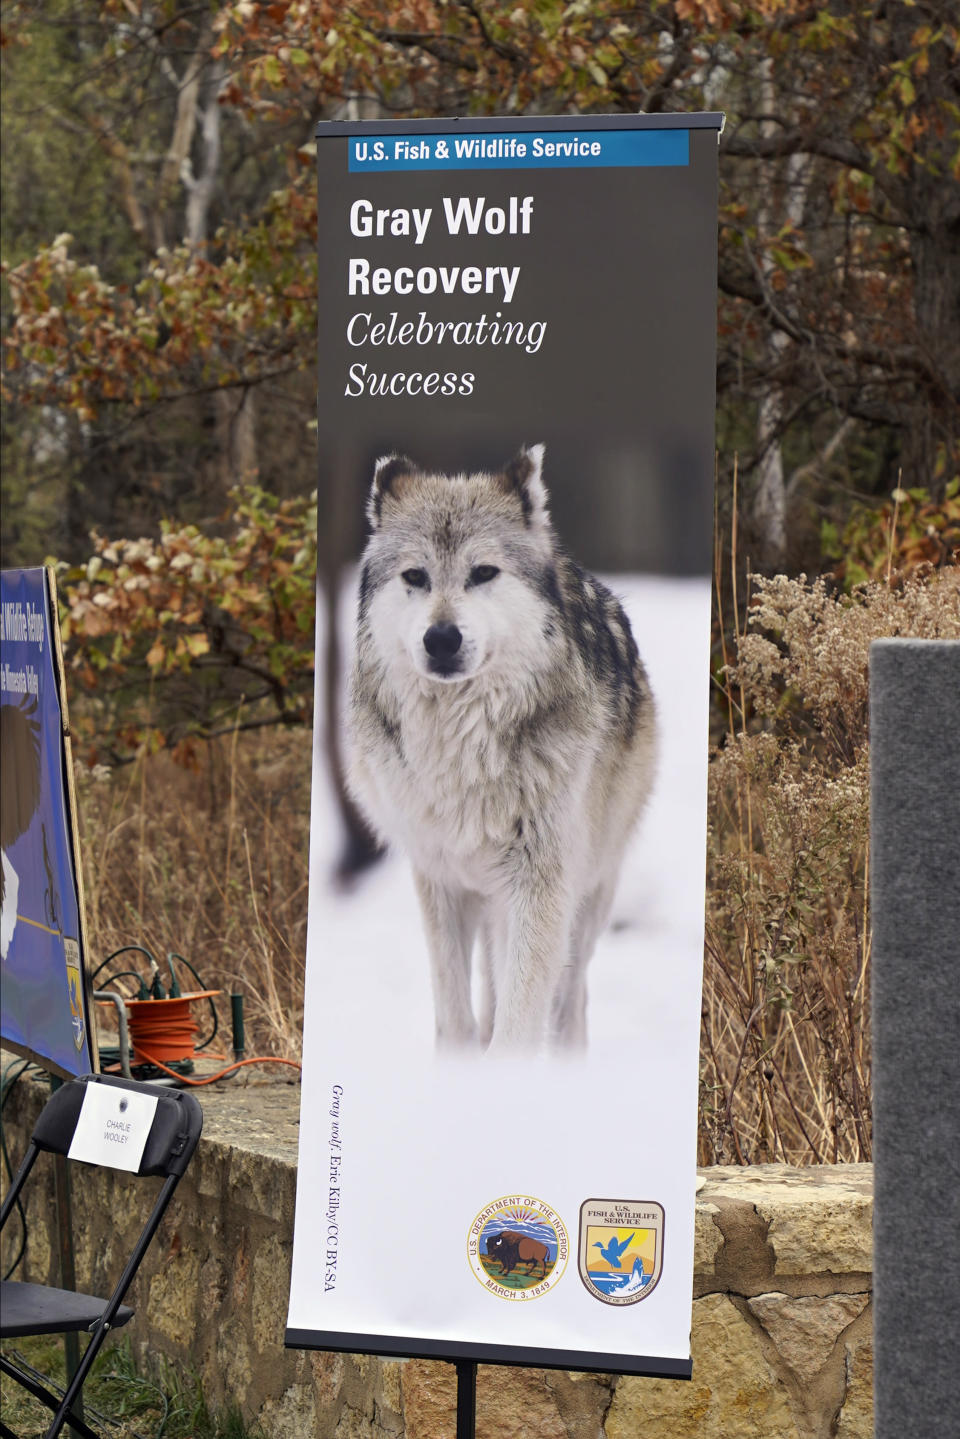 """A photos of a gray wolf is displayed near the podium where Interior Secretary David Bernhardt announced the gray wolf's recovery """"a milestone of success during a stop at the Minnesota Valley National Wildlife Refuge, Thursday, Oct. 29, 2020, in Bloomington, Minn. The move stripped Endangered Species Act protections for gray wolves in most of the U.S., ending longstanding federal safeguards and putting states and tribes in charge of overseeing the predators. (AP Photo/Jim Mone)"""